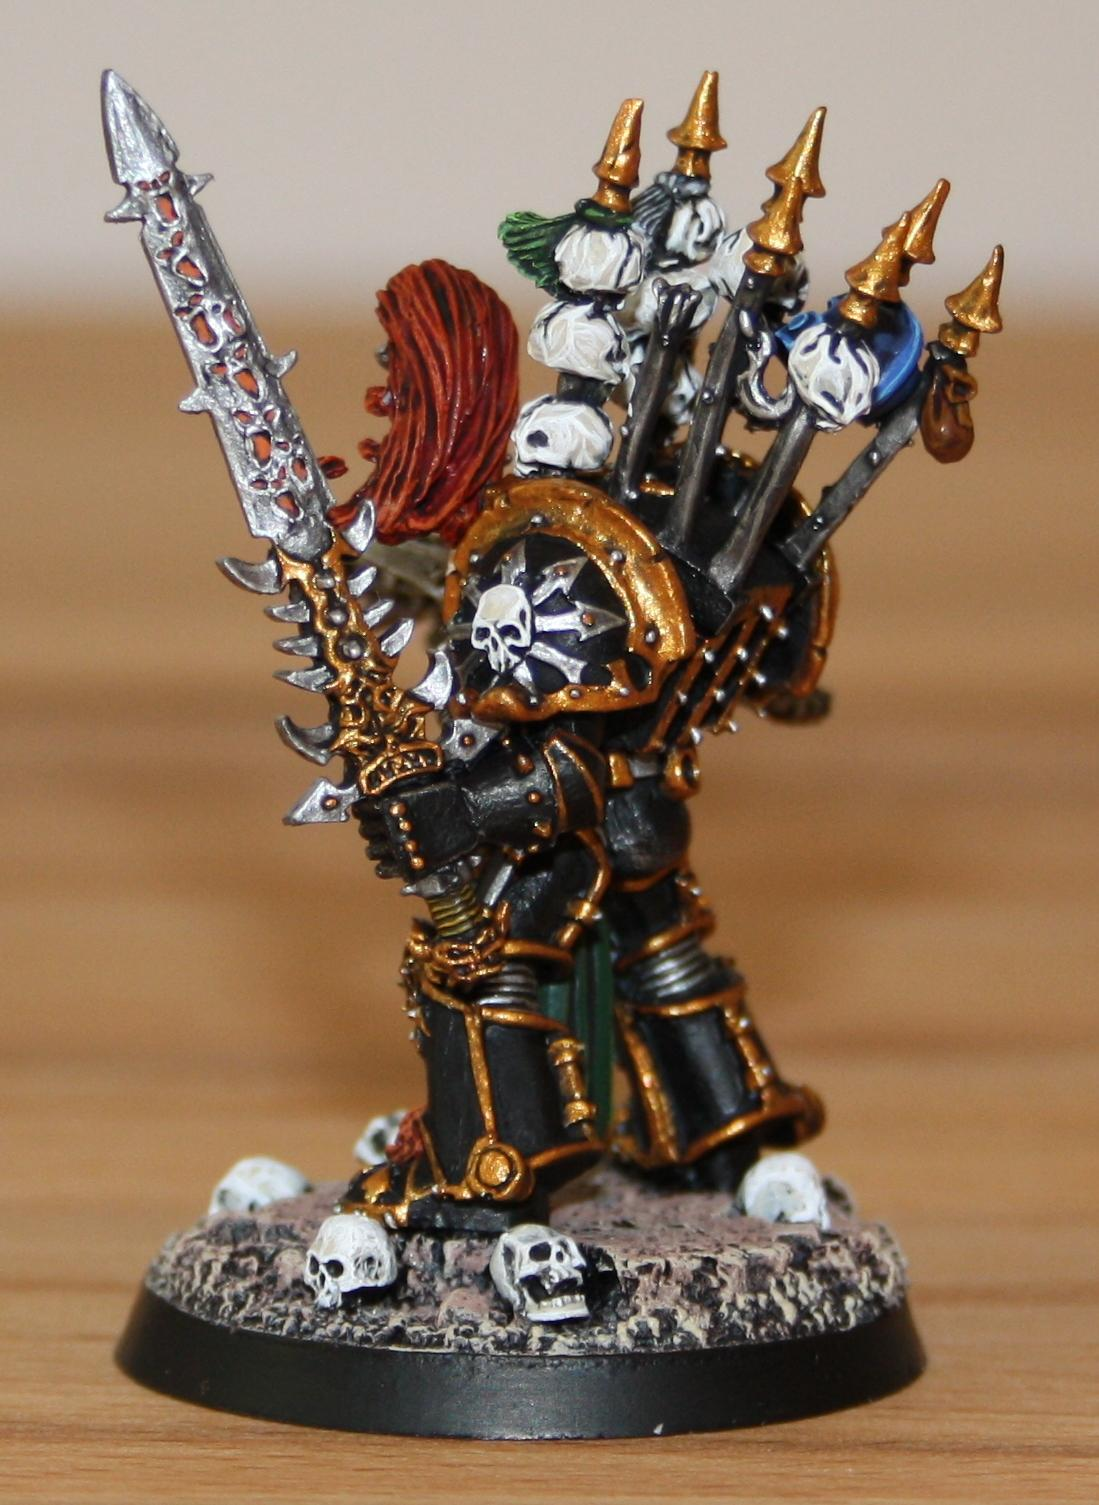 Abaddon, Chaos Space Marines, Chaos Undivided, Painted, Warhammer 40,000